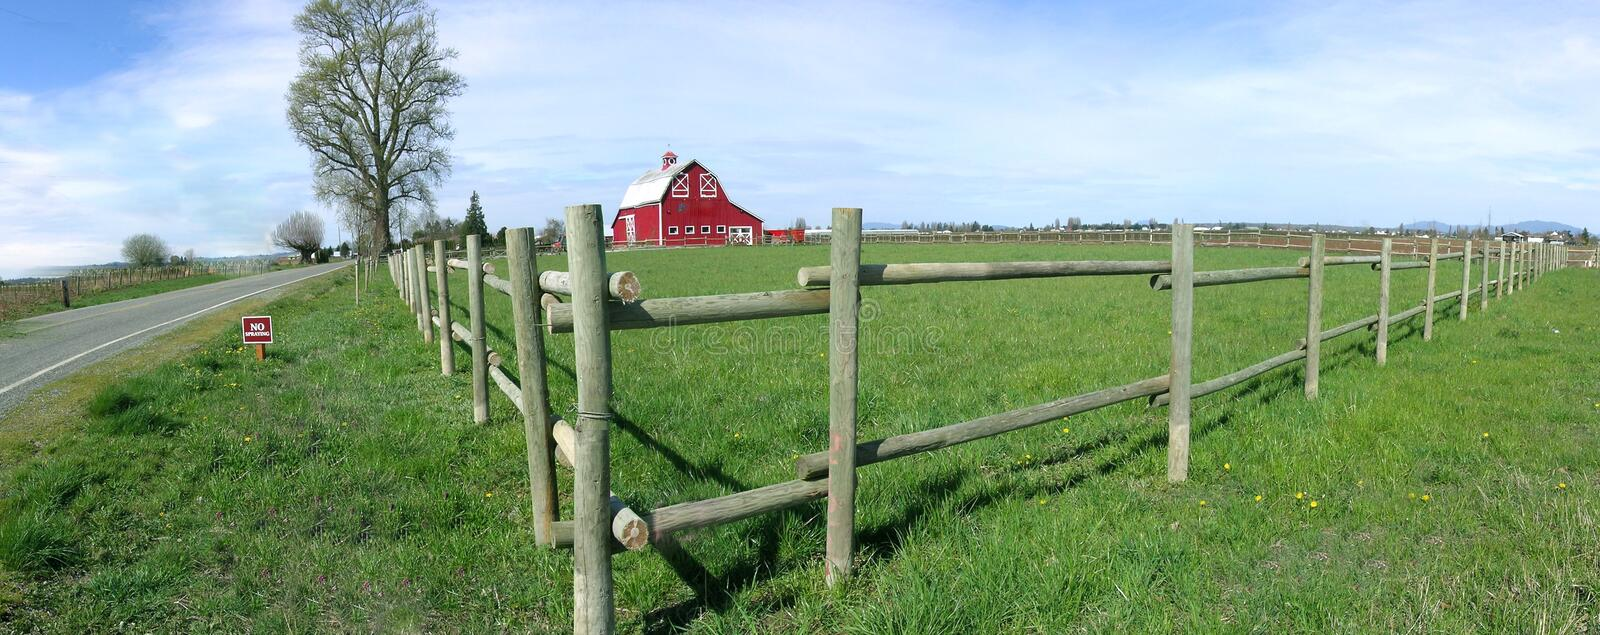 Download Panorama Rustic Barn And Fence Stock Image - Image: 667703